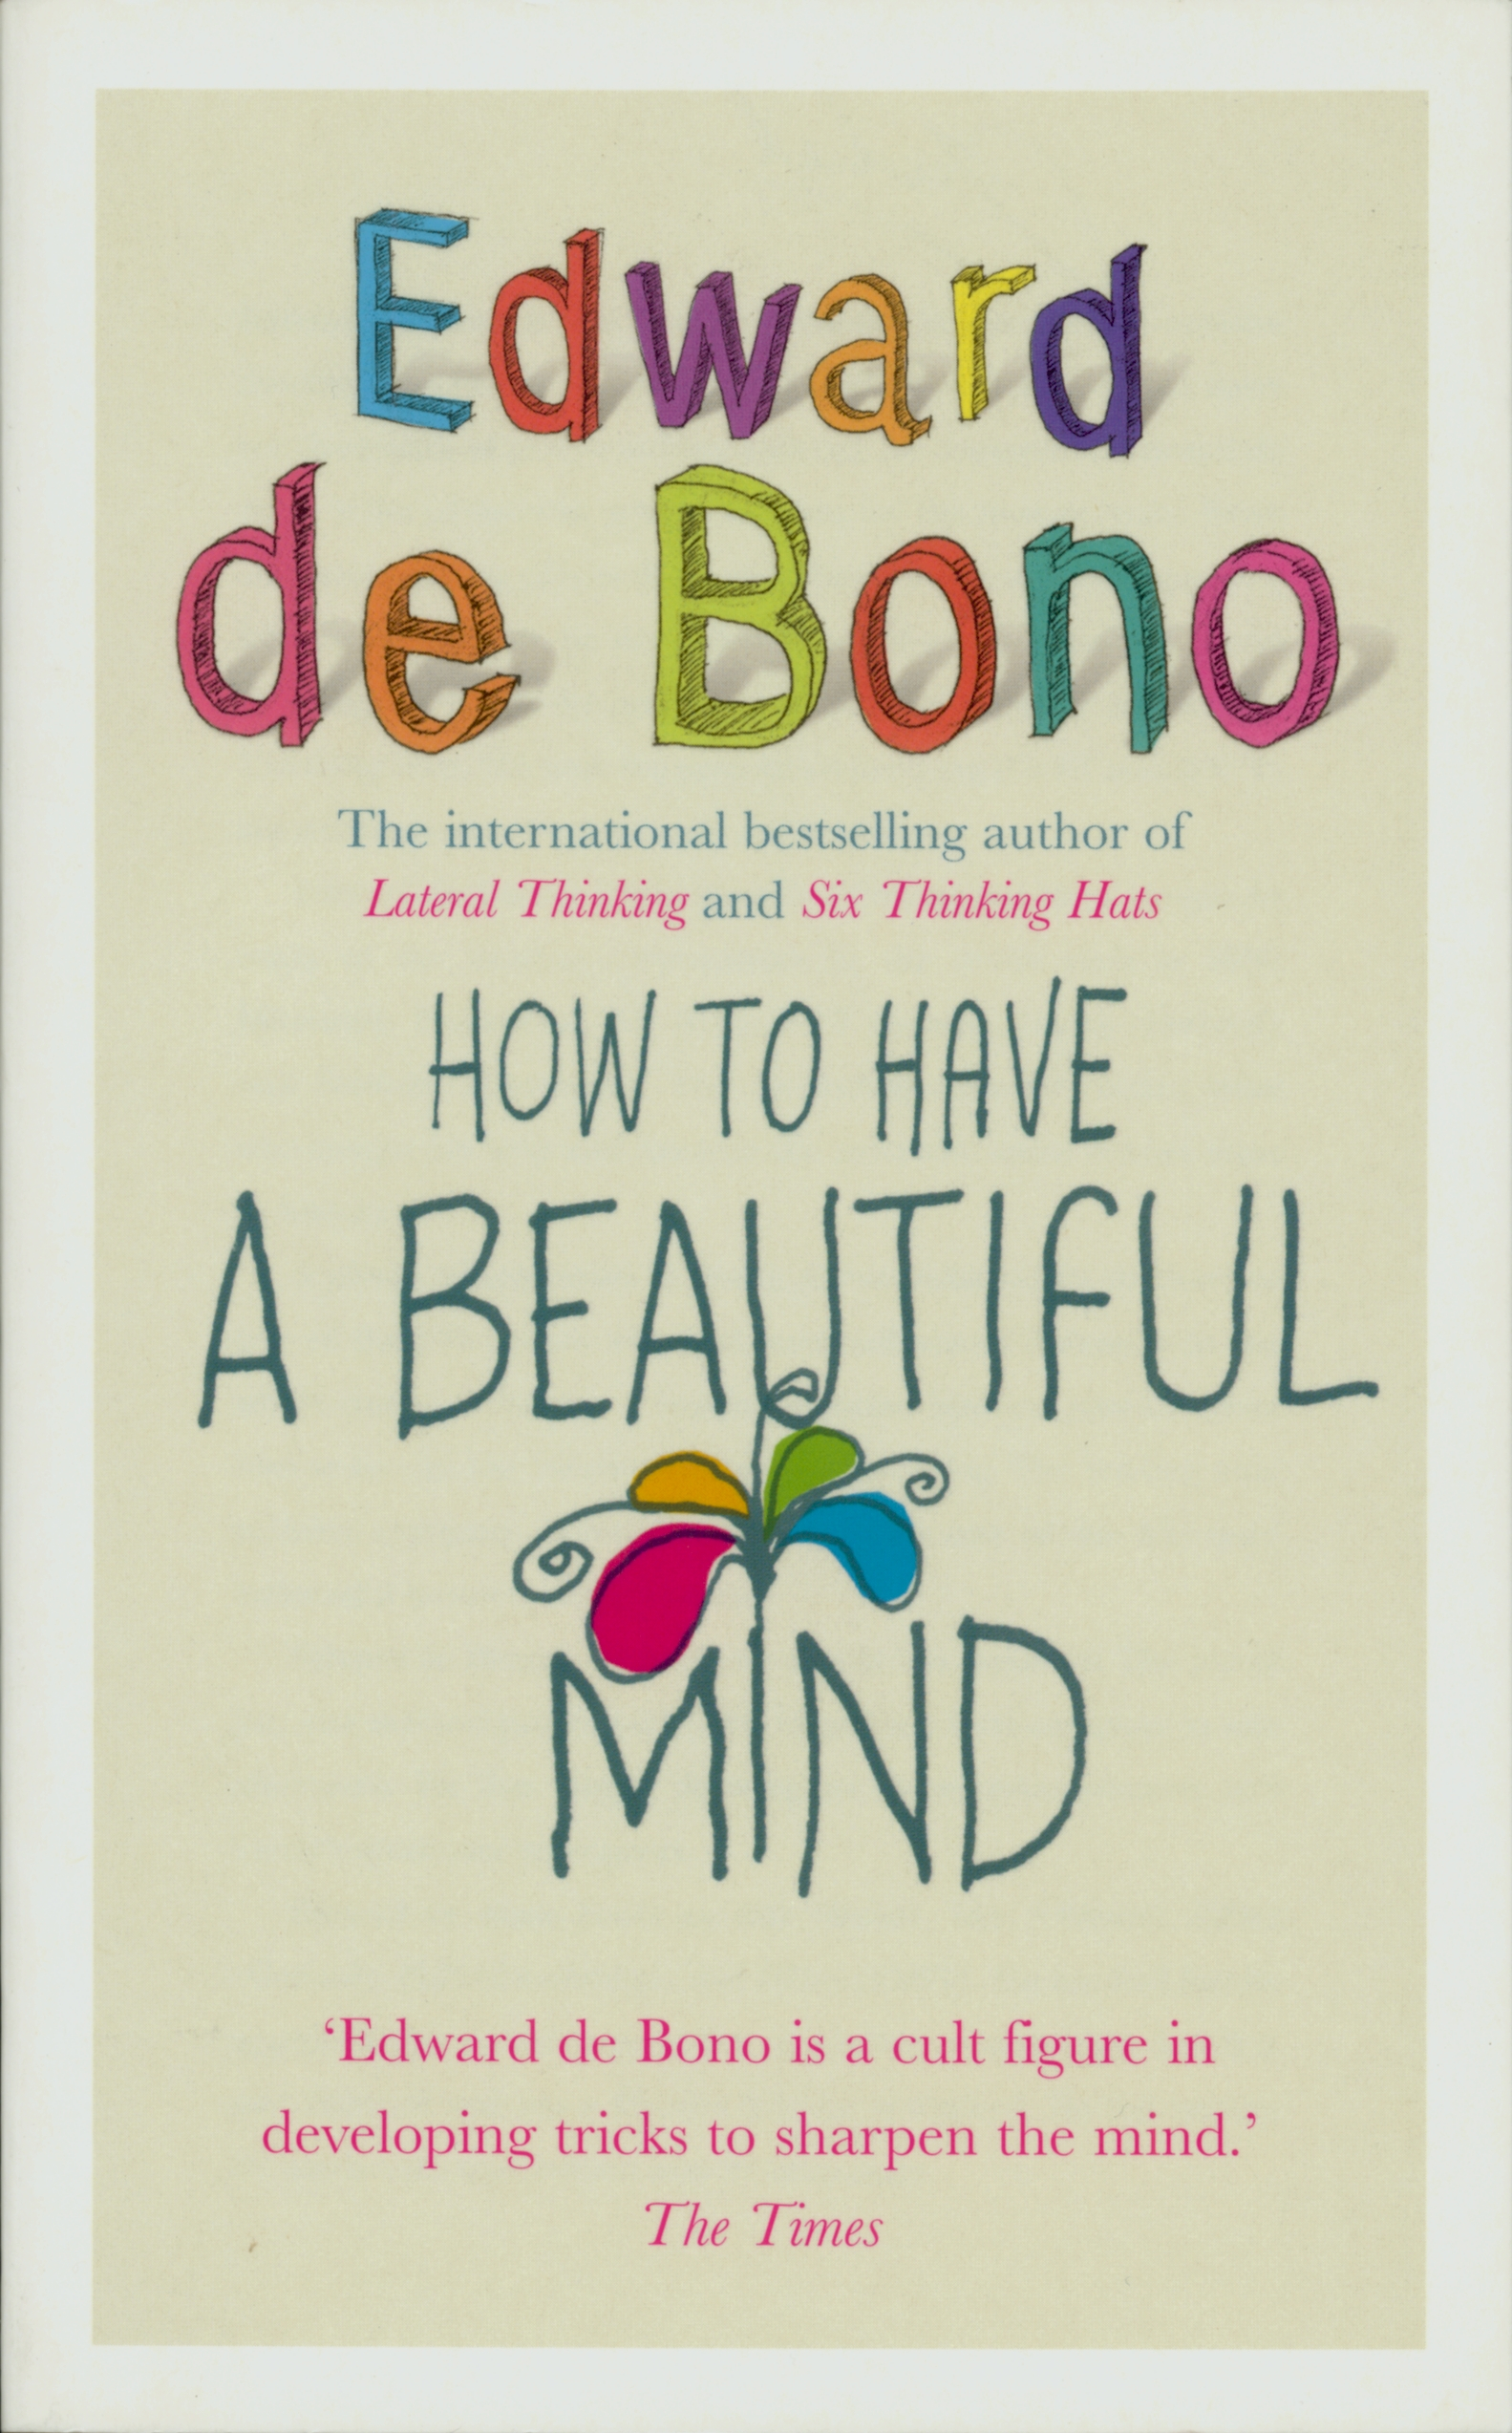 A Beautiful Mind Book Cover : How to have a beautiful mind penguin books new zealand